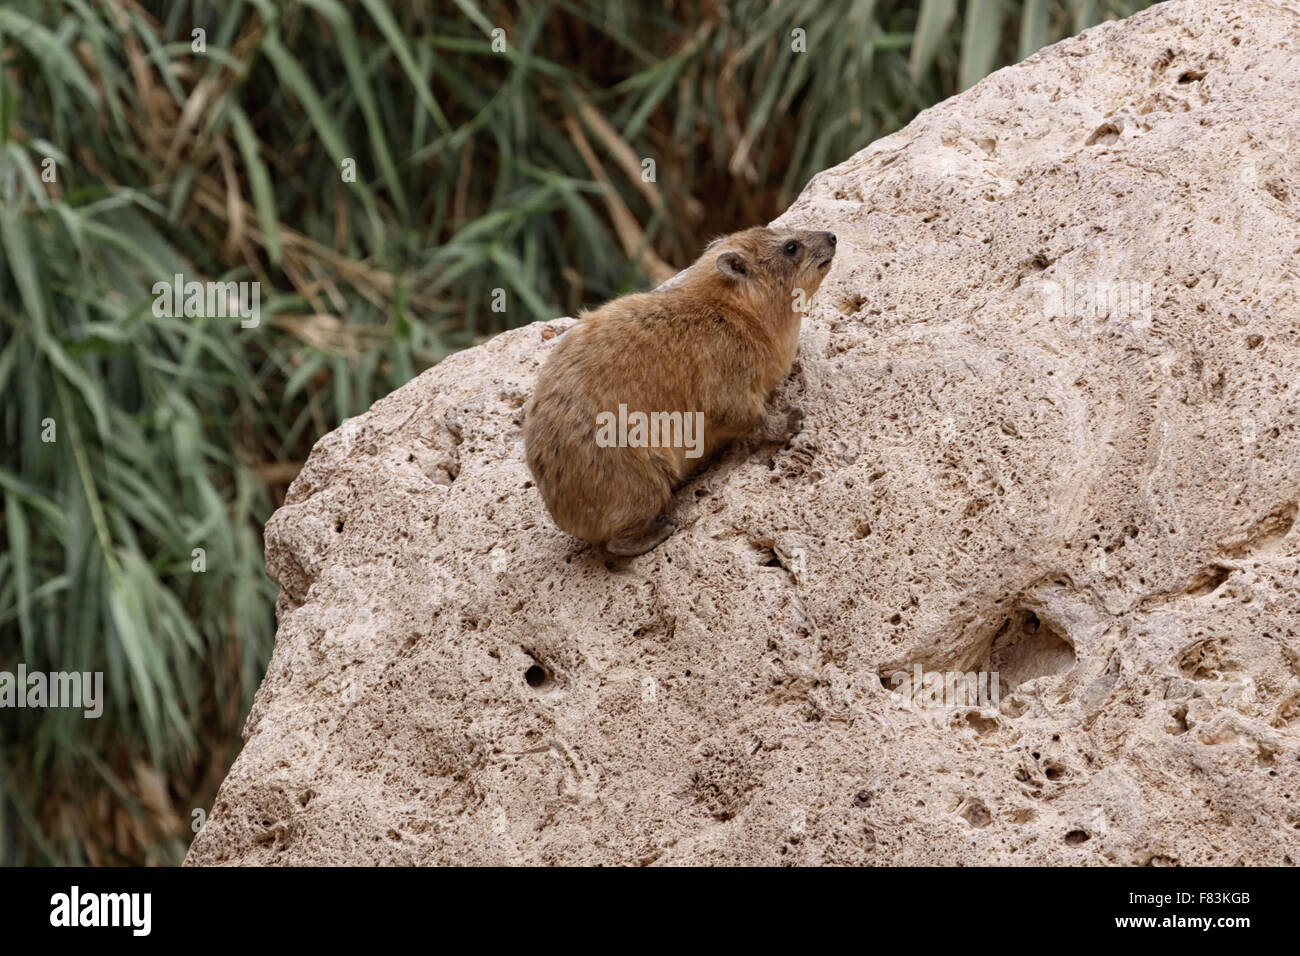 Hyrax This rodent looking animal lives in Ein Gedi in Israel - Stock Image